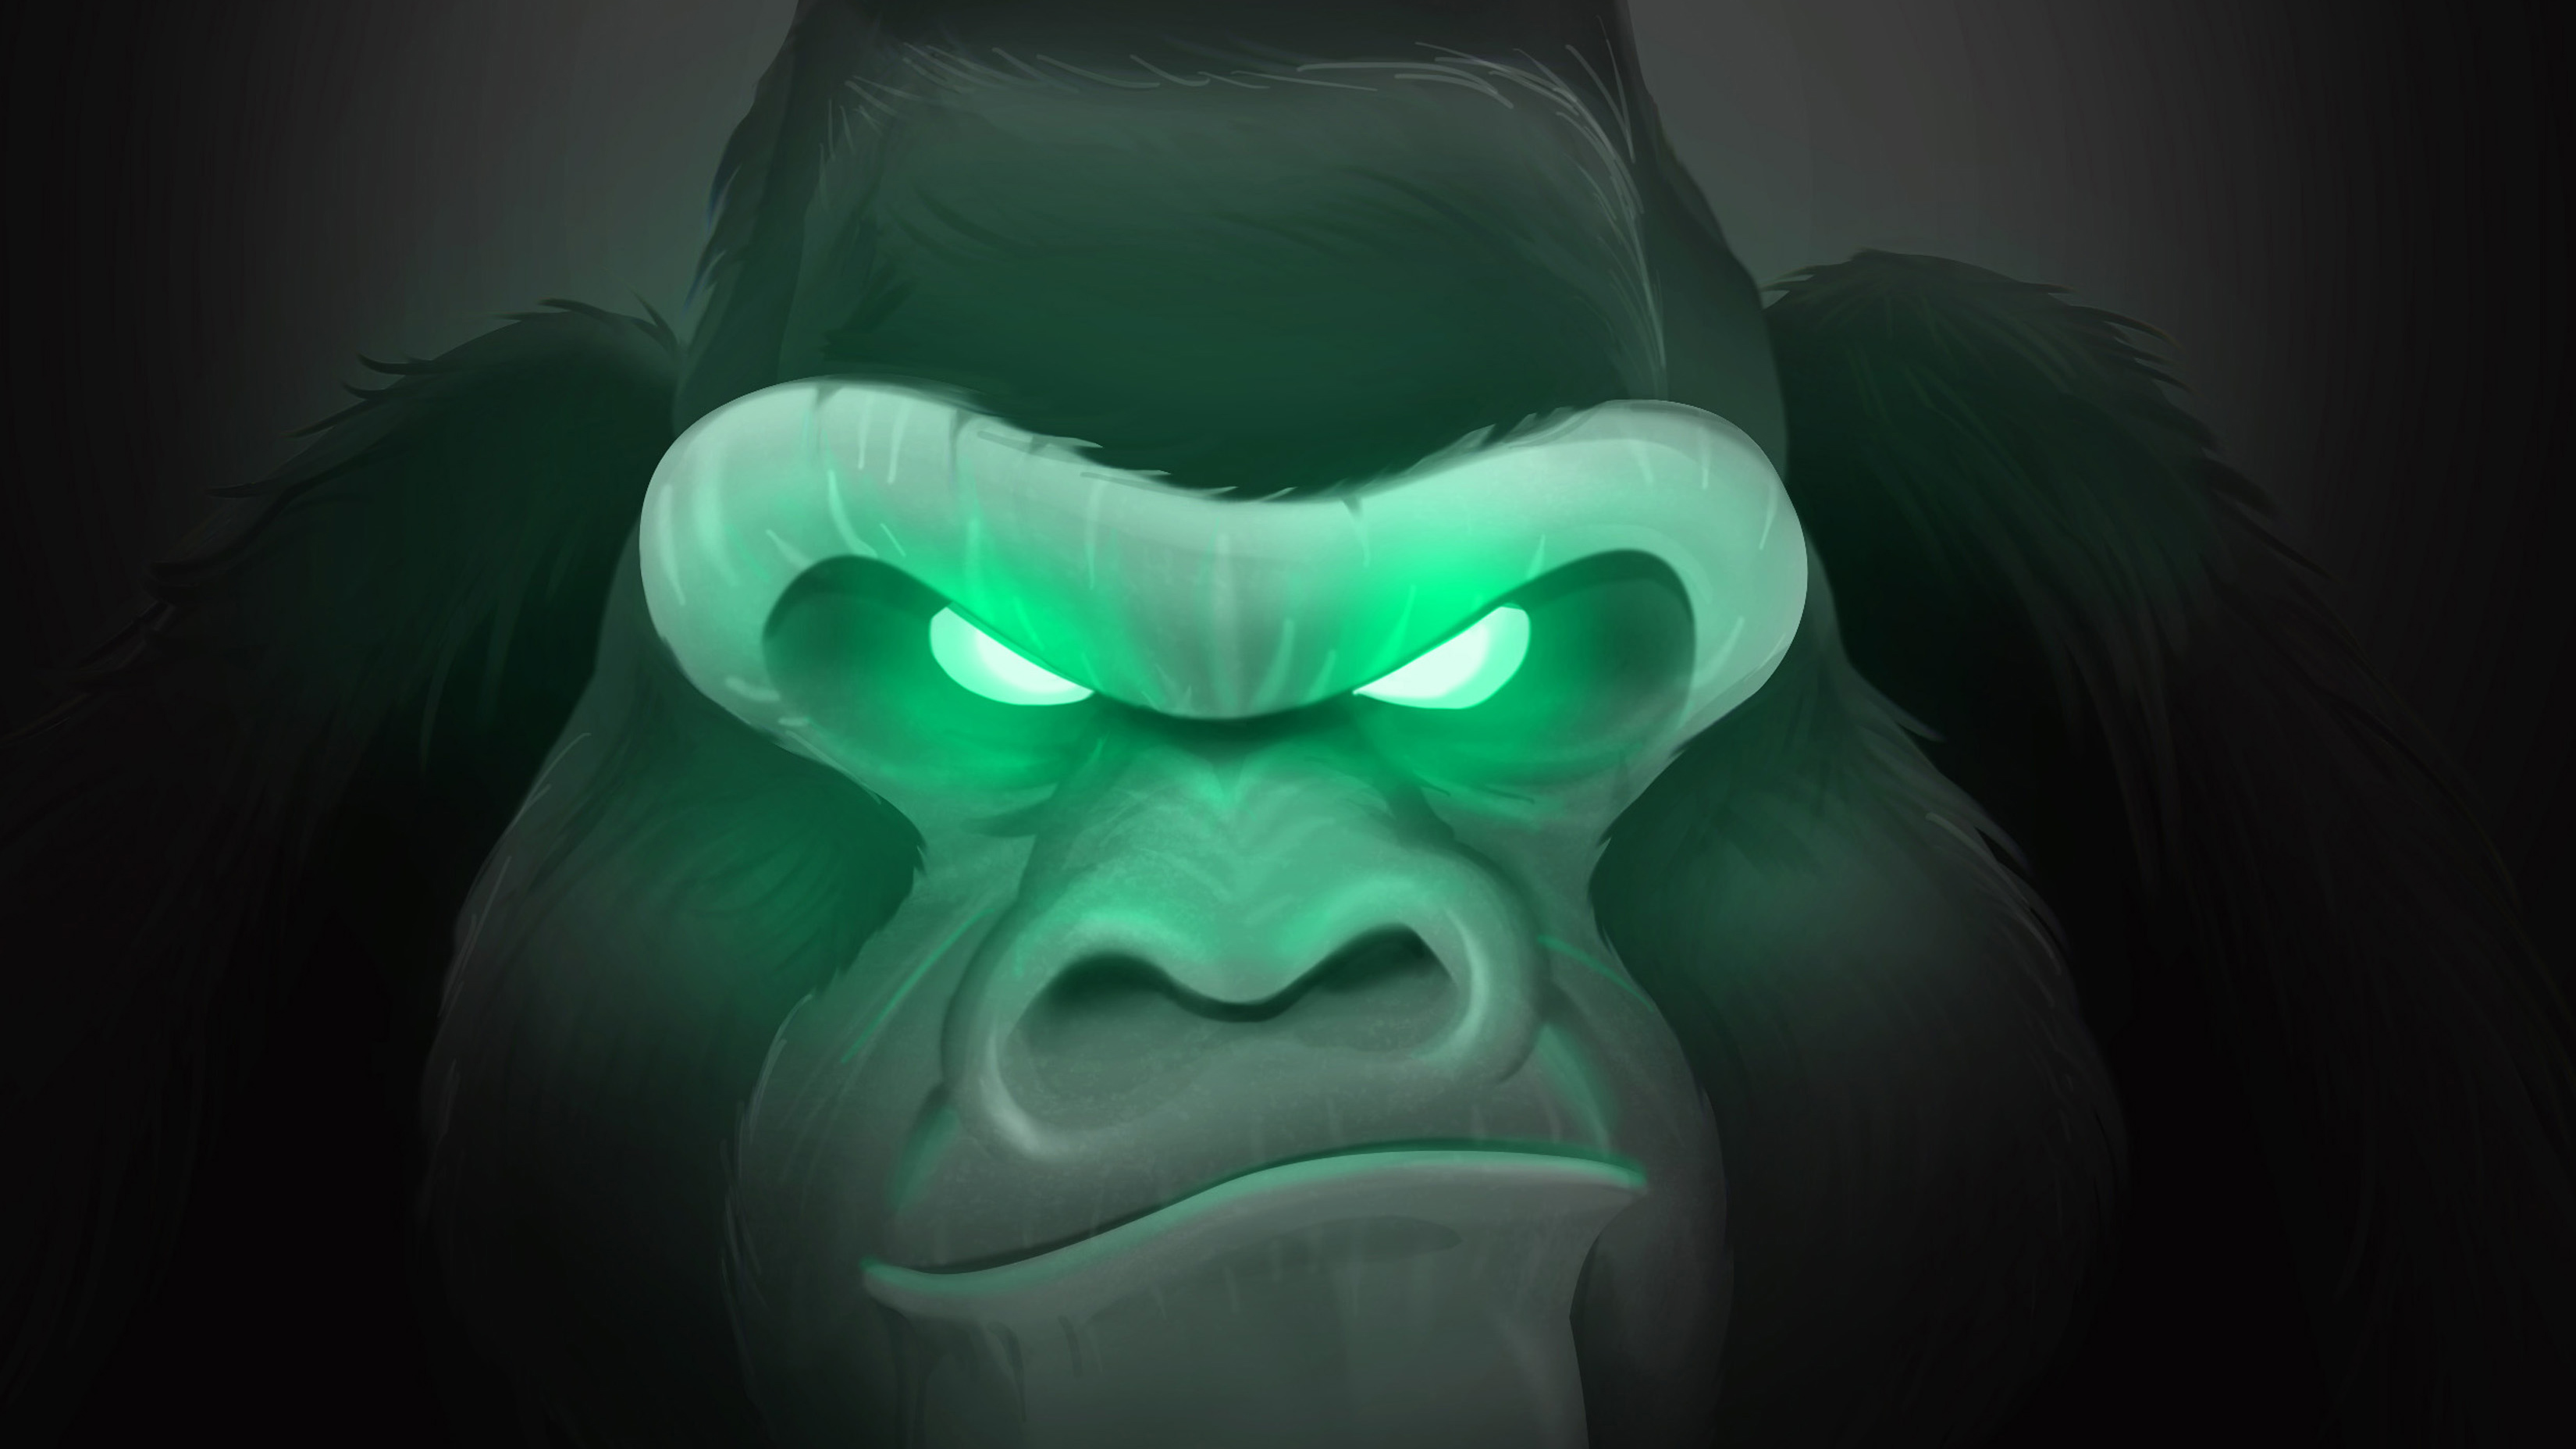 Art Gorilla Hd Artist 4k Wallpapers Images Backgrounds